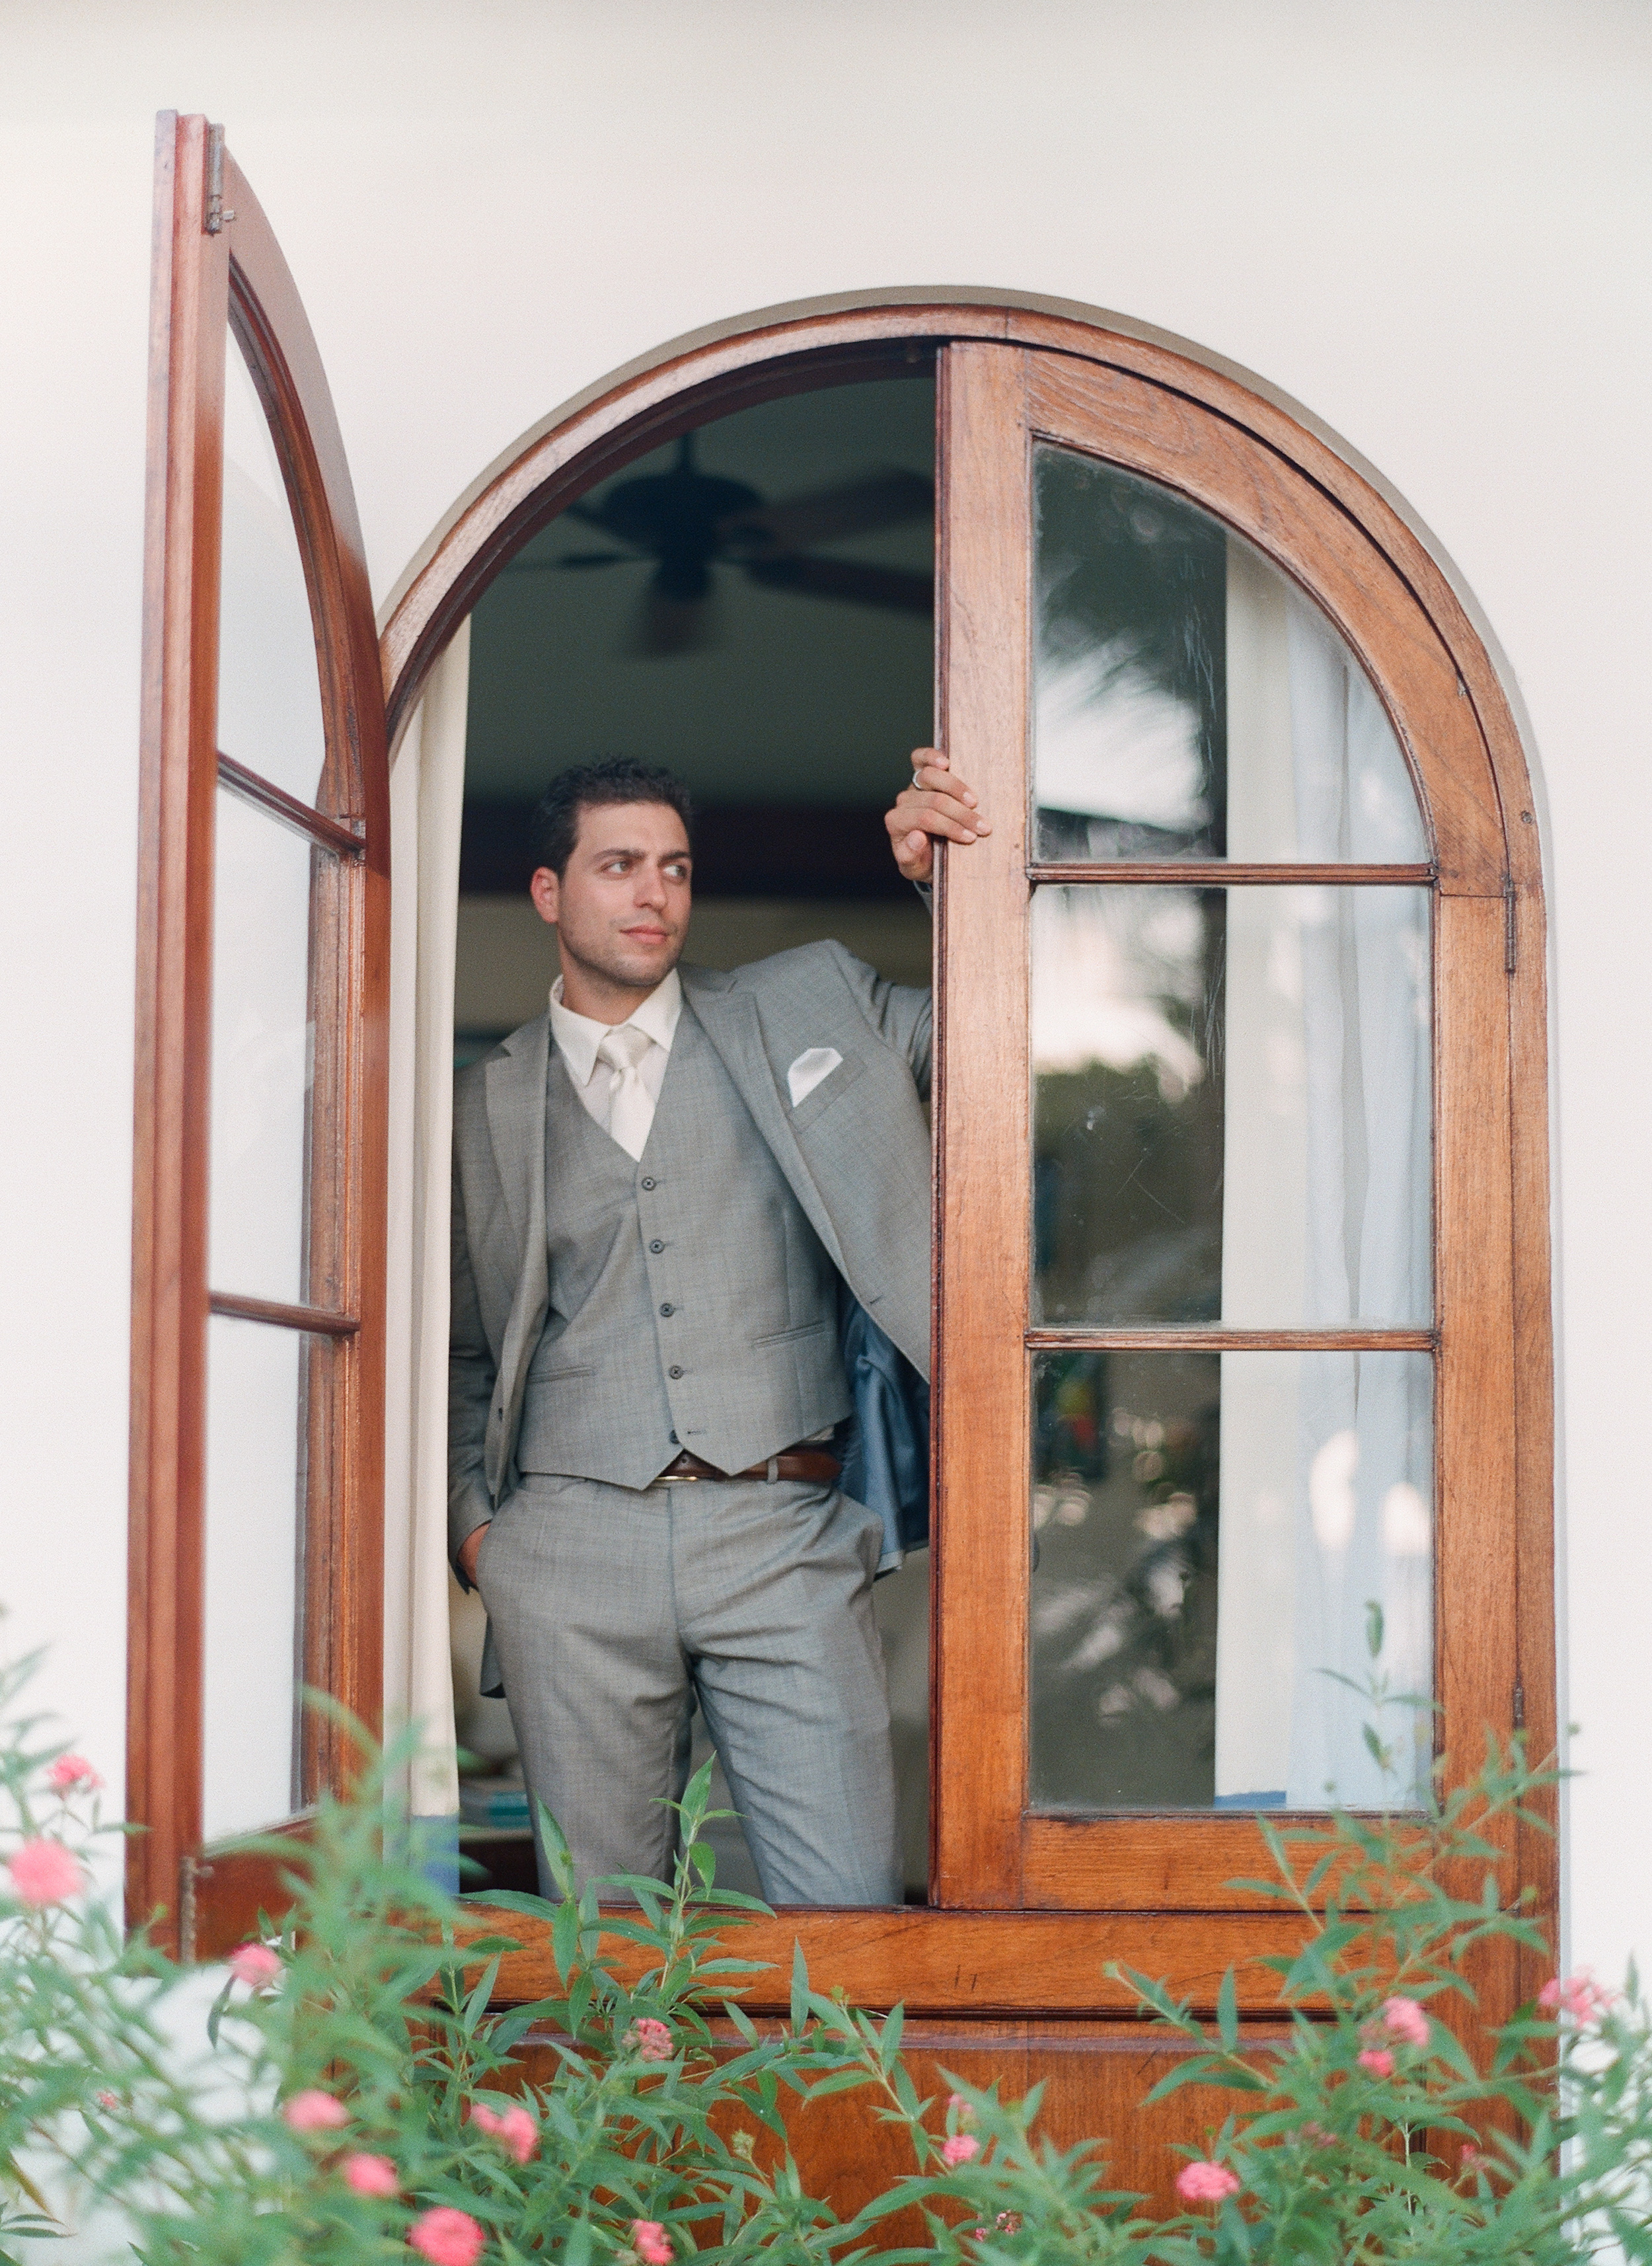 Destination Wedding Photographer Lexia Frank is a film photographer on the west coast specializing in luxury weddings and fine art film photography. In this article she writes a letter to the groom, and talks about the groom's role in photography. Groom poses in a casement window at Roundhill Jamaica before his Roundhill Jamaica weddingwww.lexiafrank.com